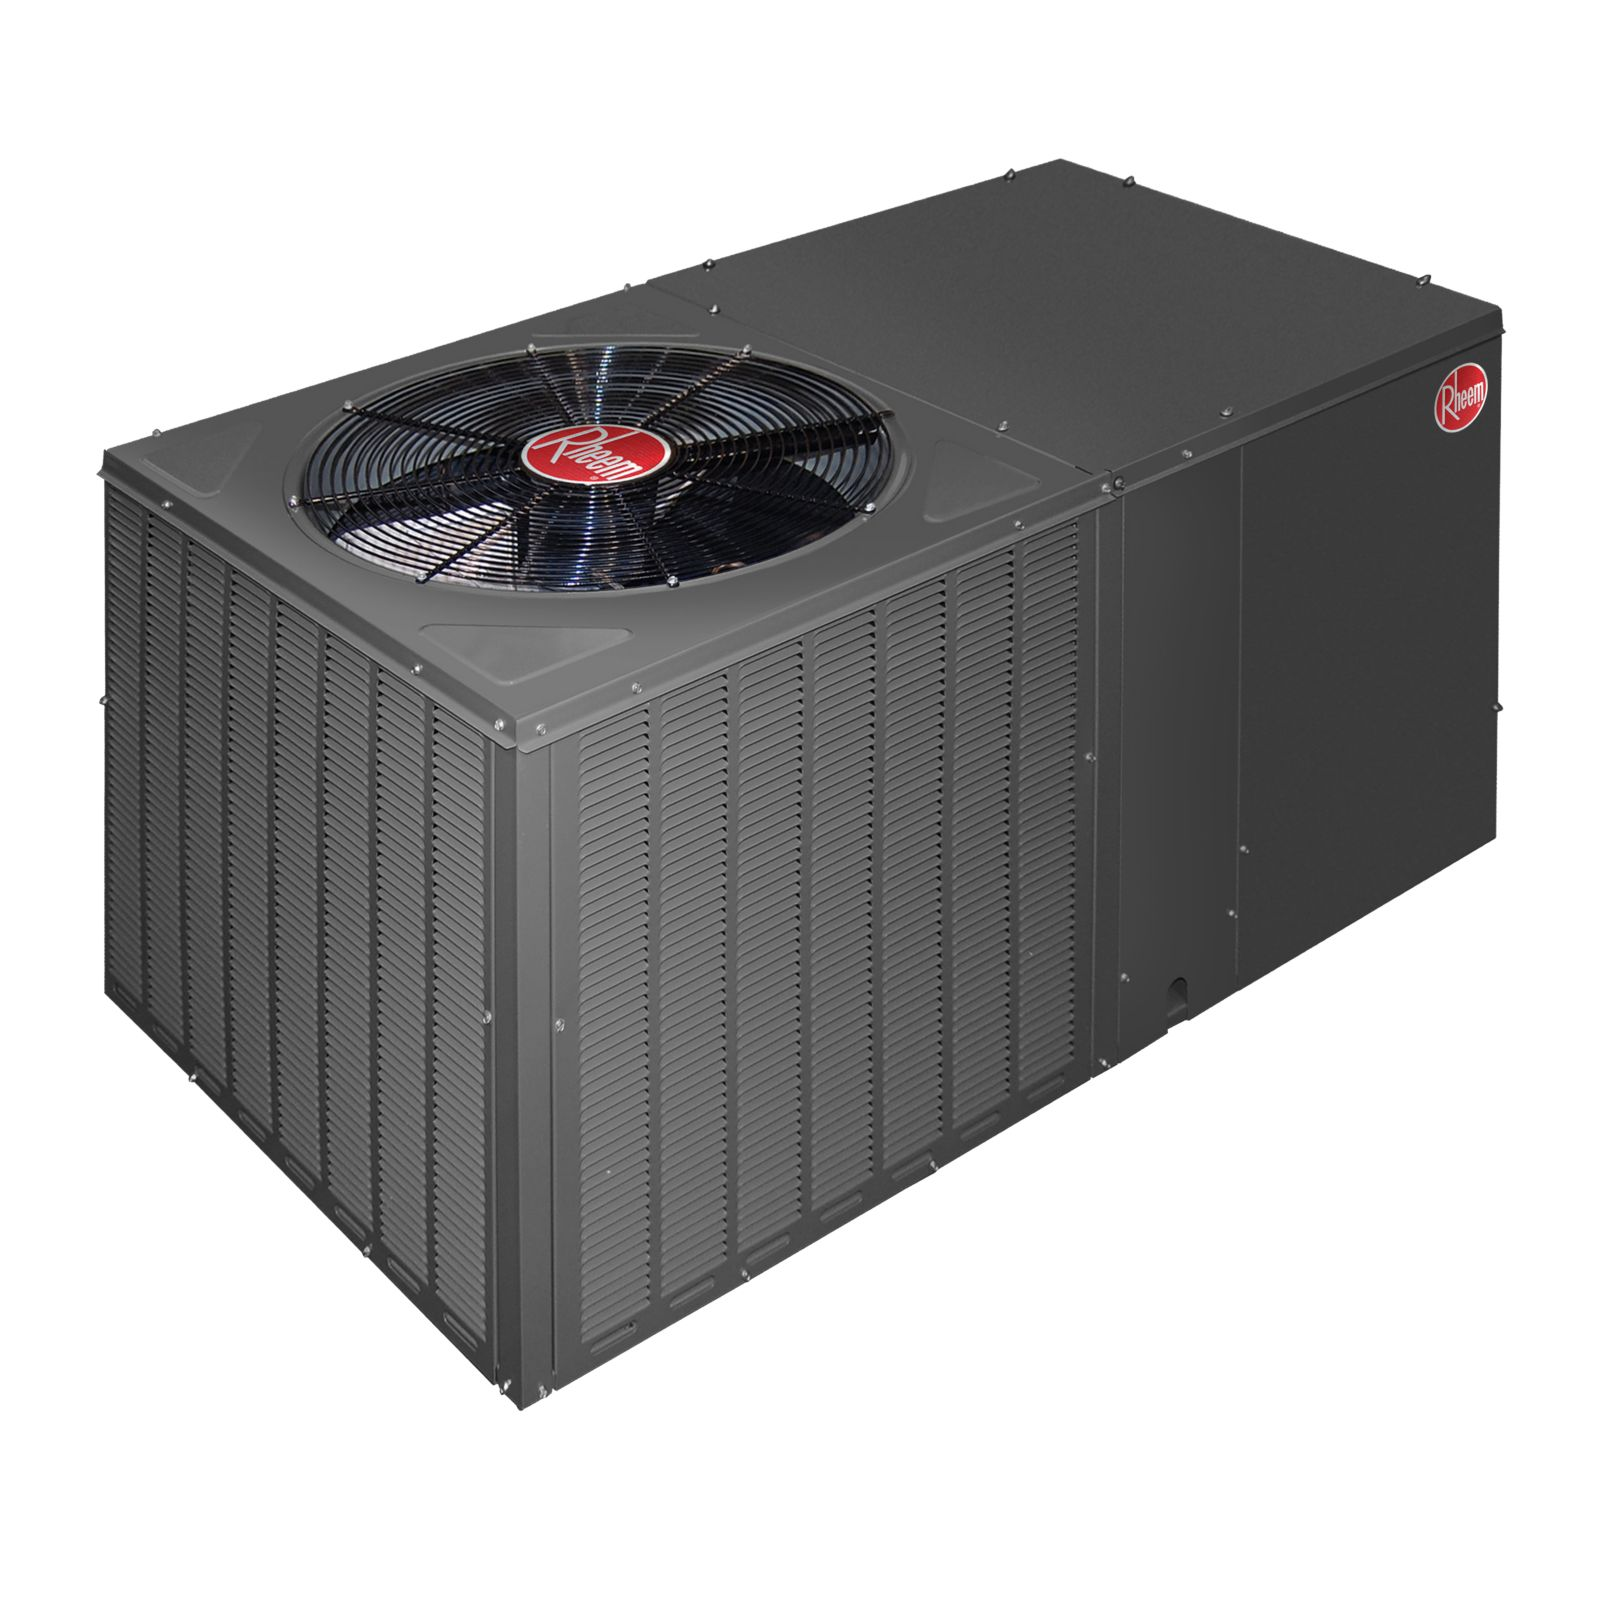 Rheem RQRM-A048JK000 - Classic 4 Ton, 15/16 SEER, R410A, Packaged Heat Pump With Horizontal Discharge, 208-230 V, 1 Ph, 60 Hz